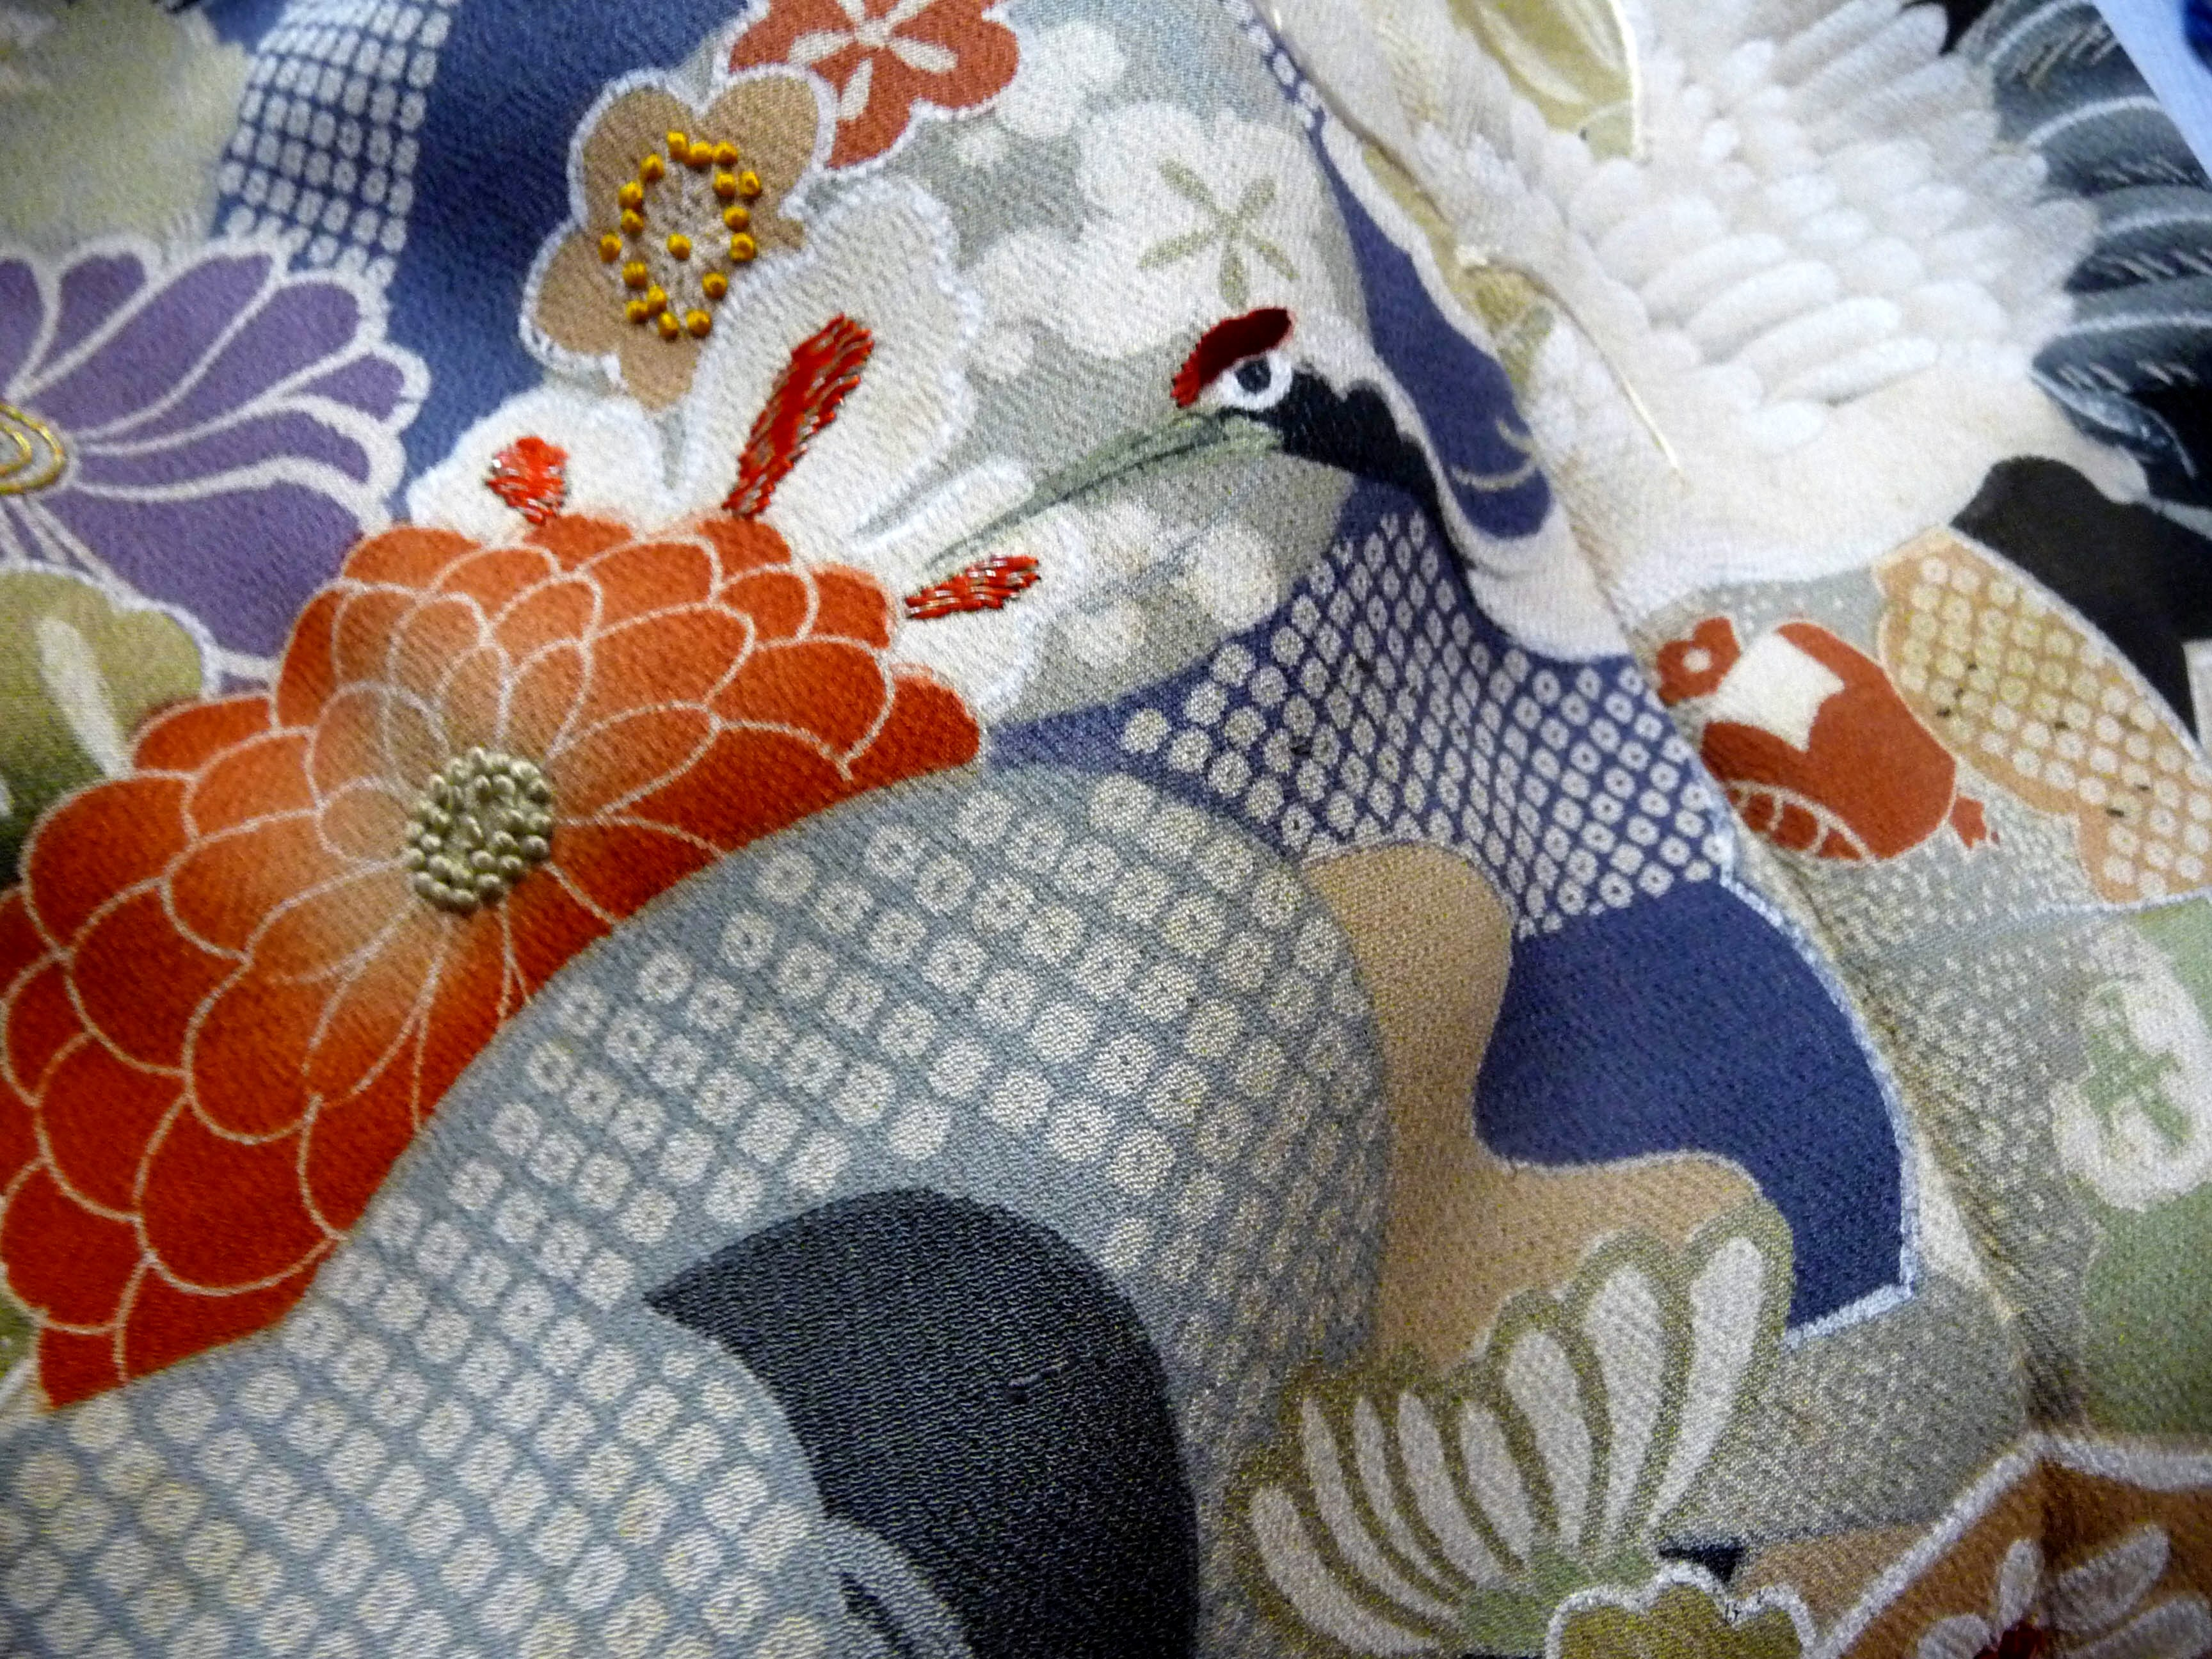 Japanese textile from Katie Chaplin's collection